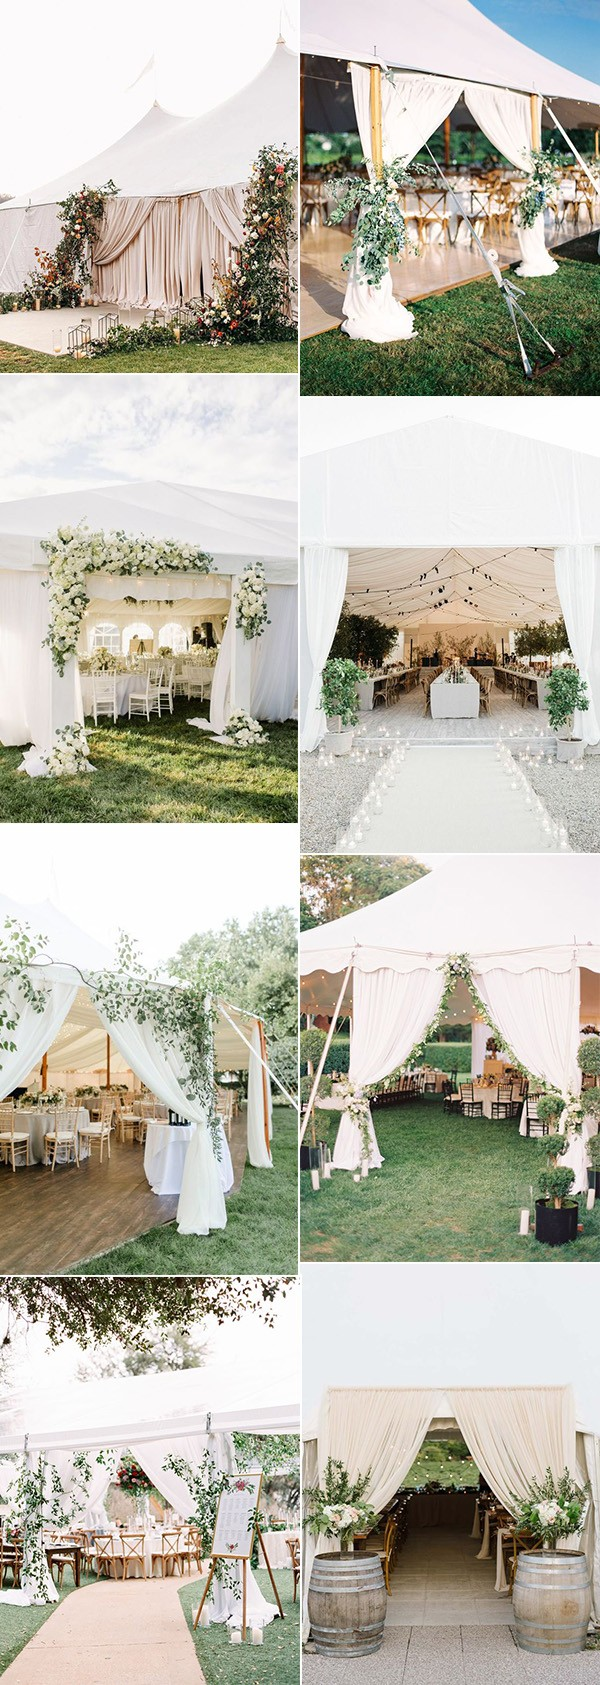 16 Gorgeous Wedding Entrance Decoration Ideas For Outdoor Tent Weddings Emmalovesweddings